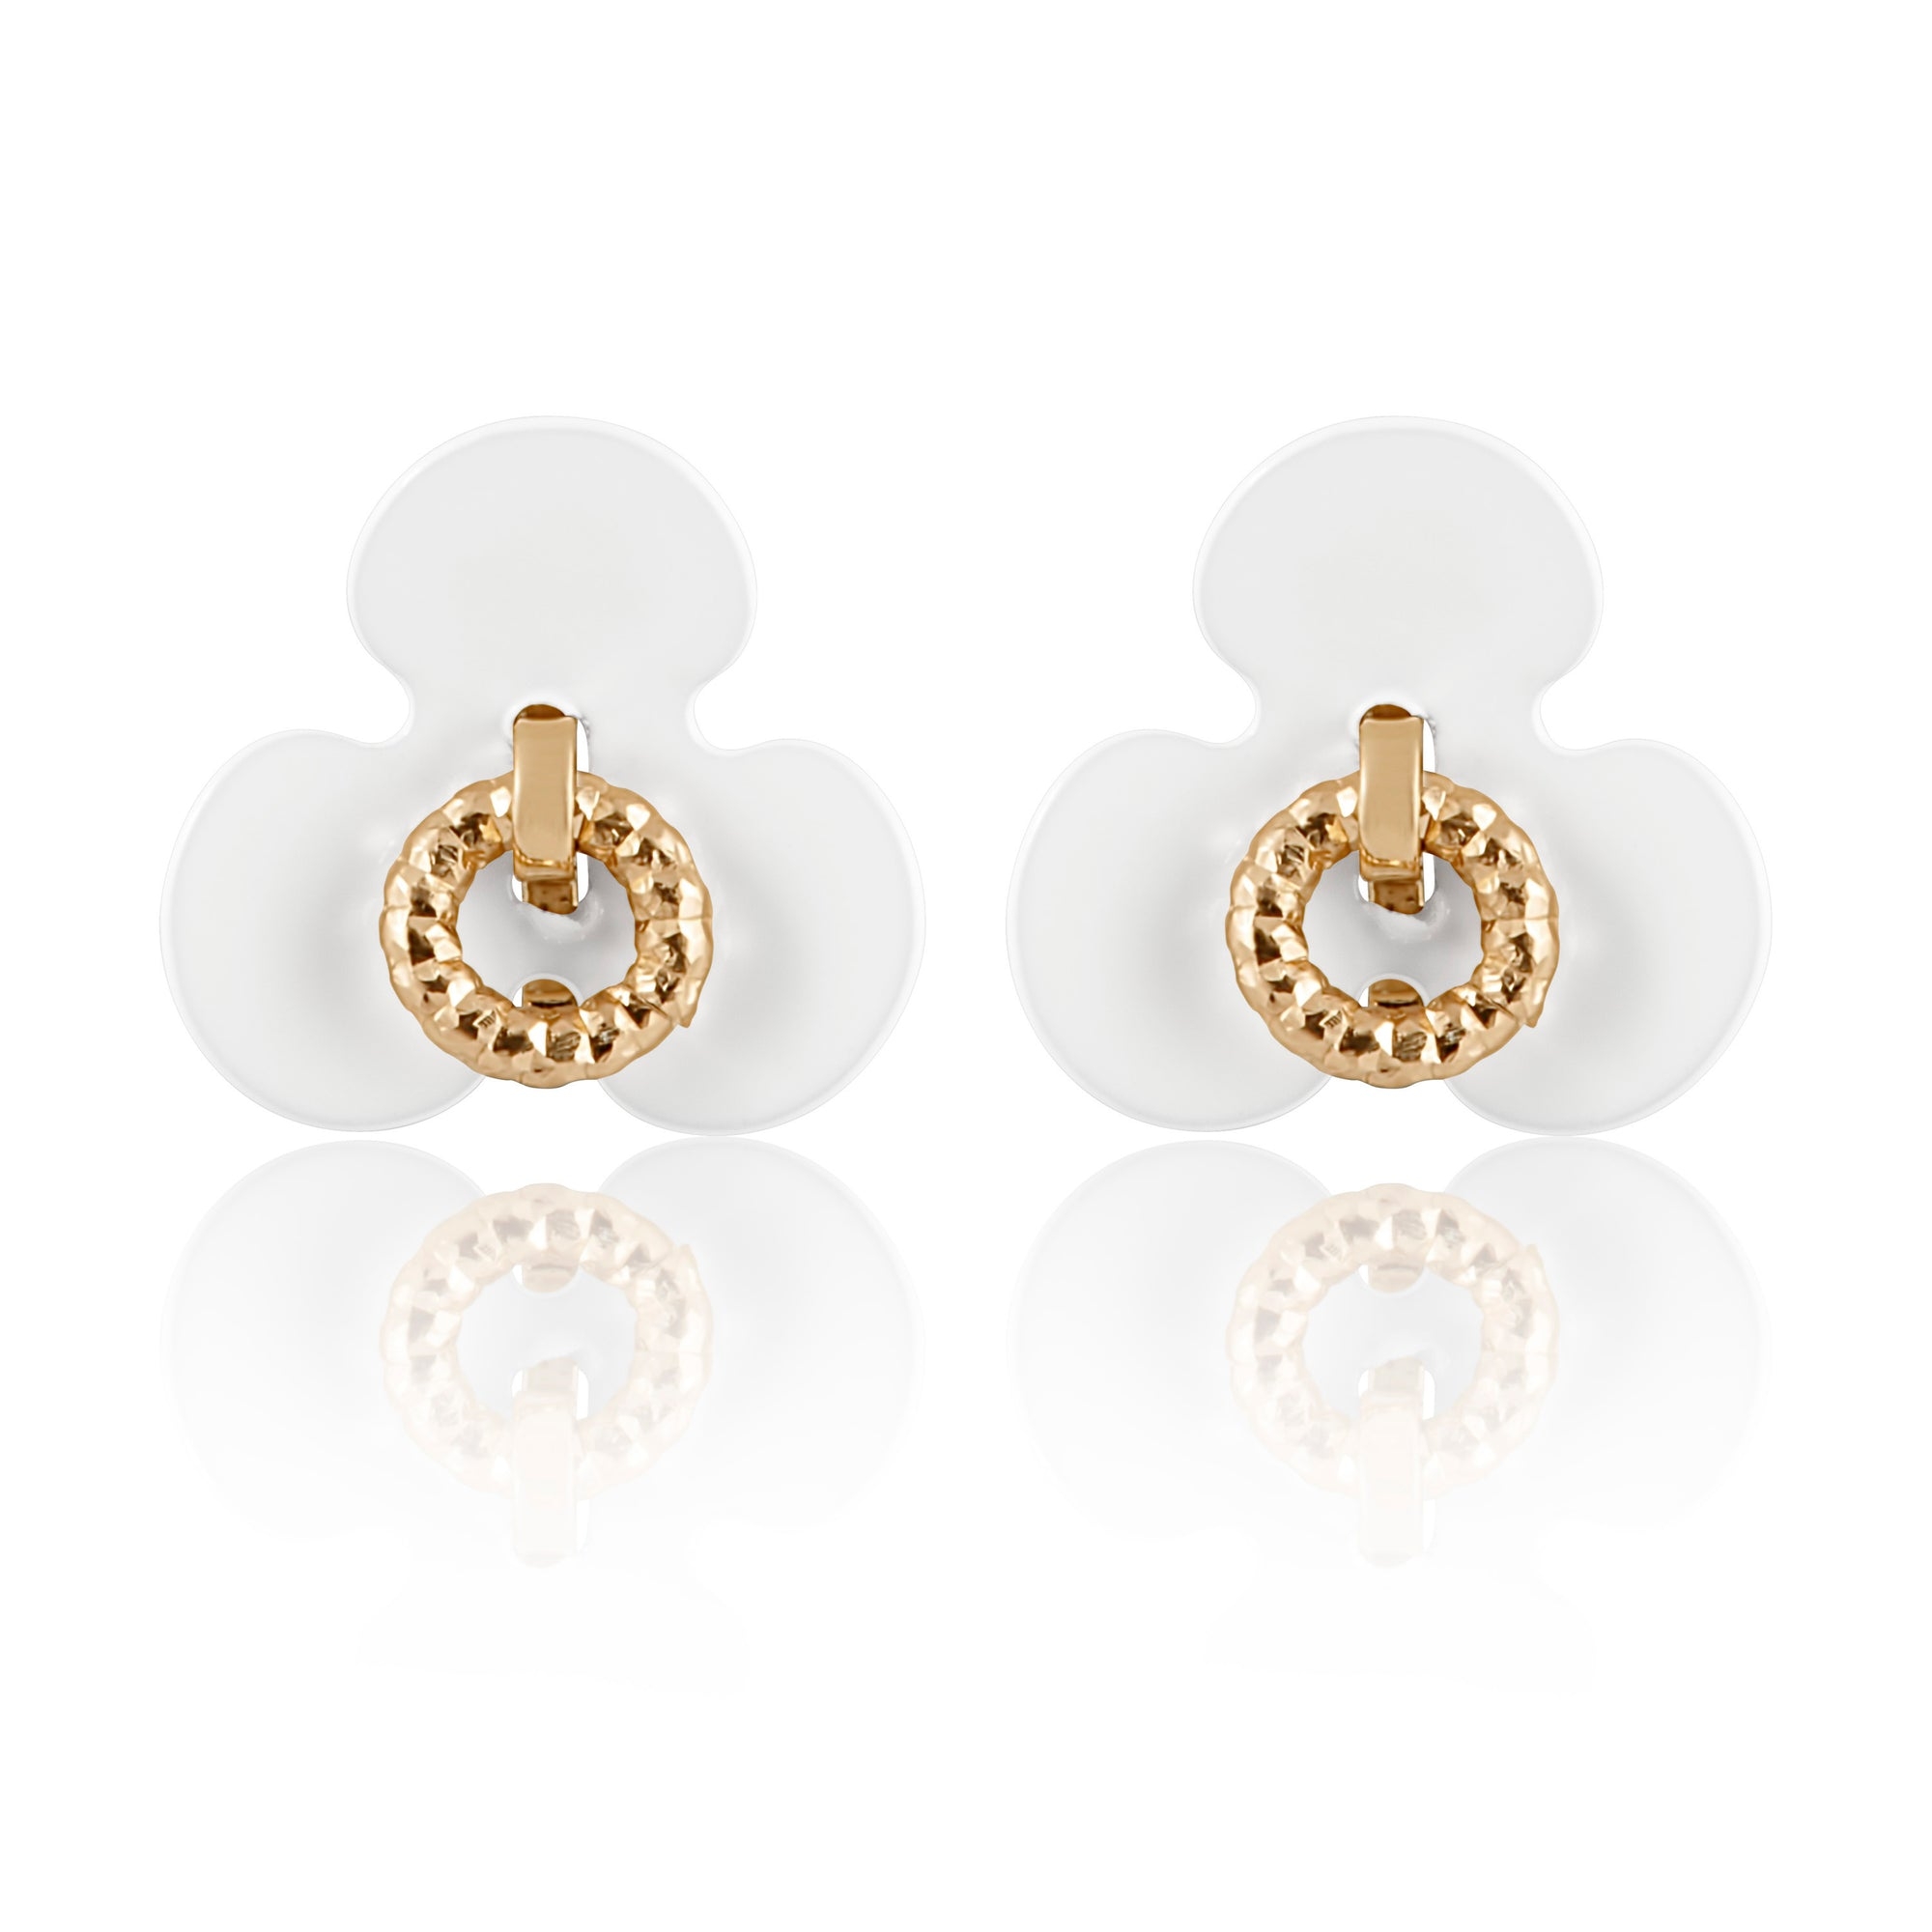 Idalia Jewelry-The Flower Stud Earrings